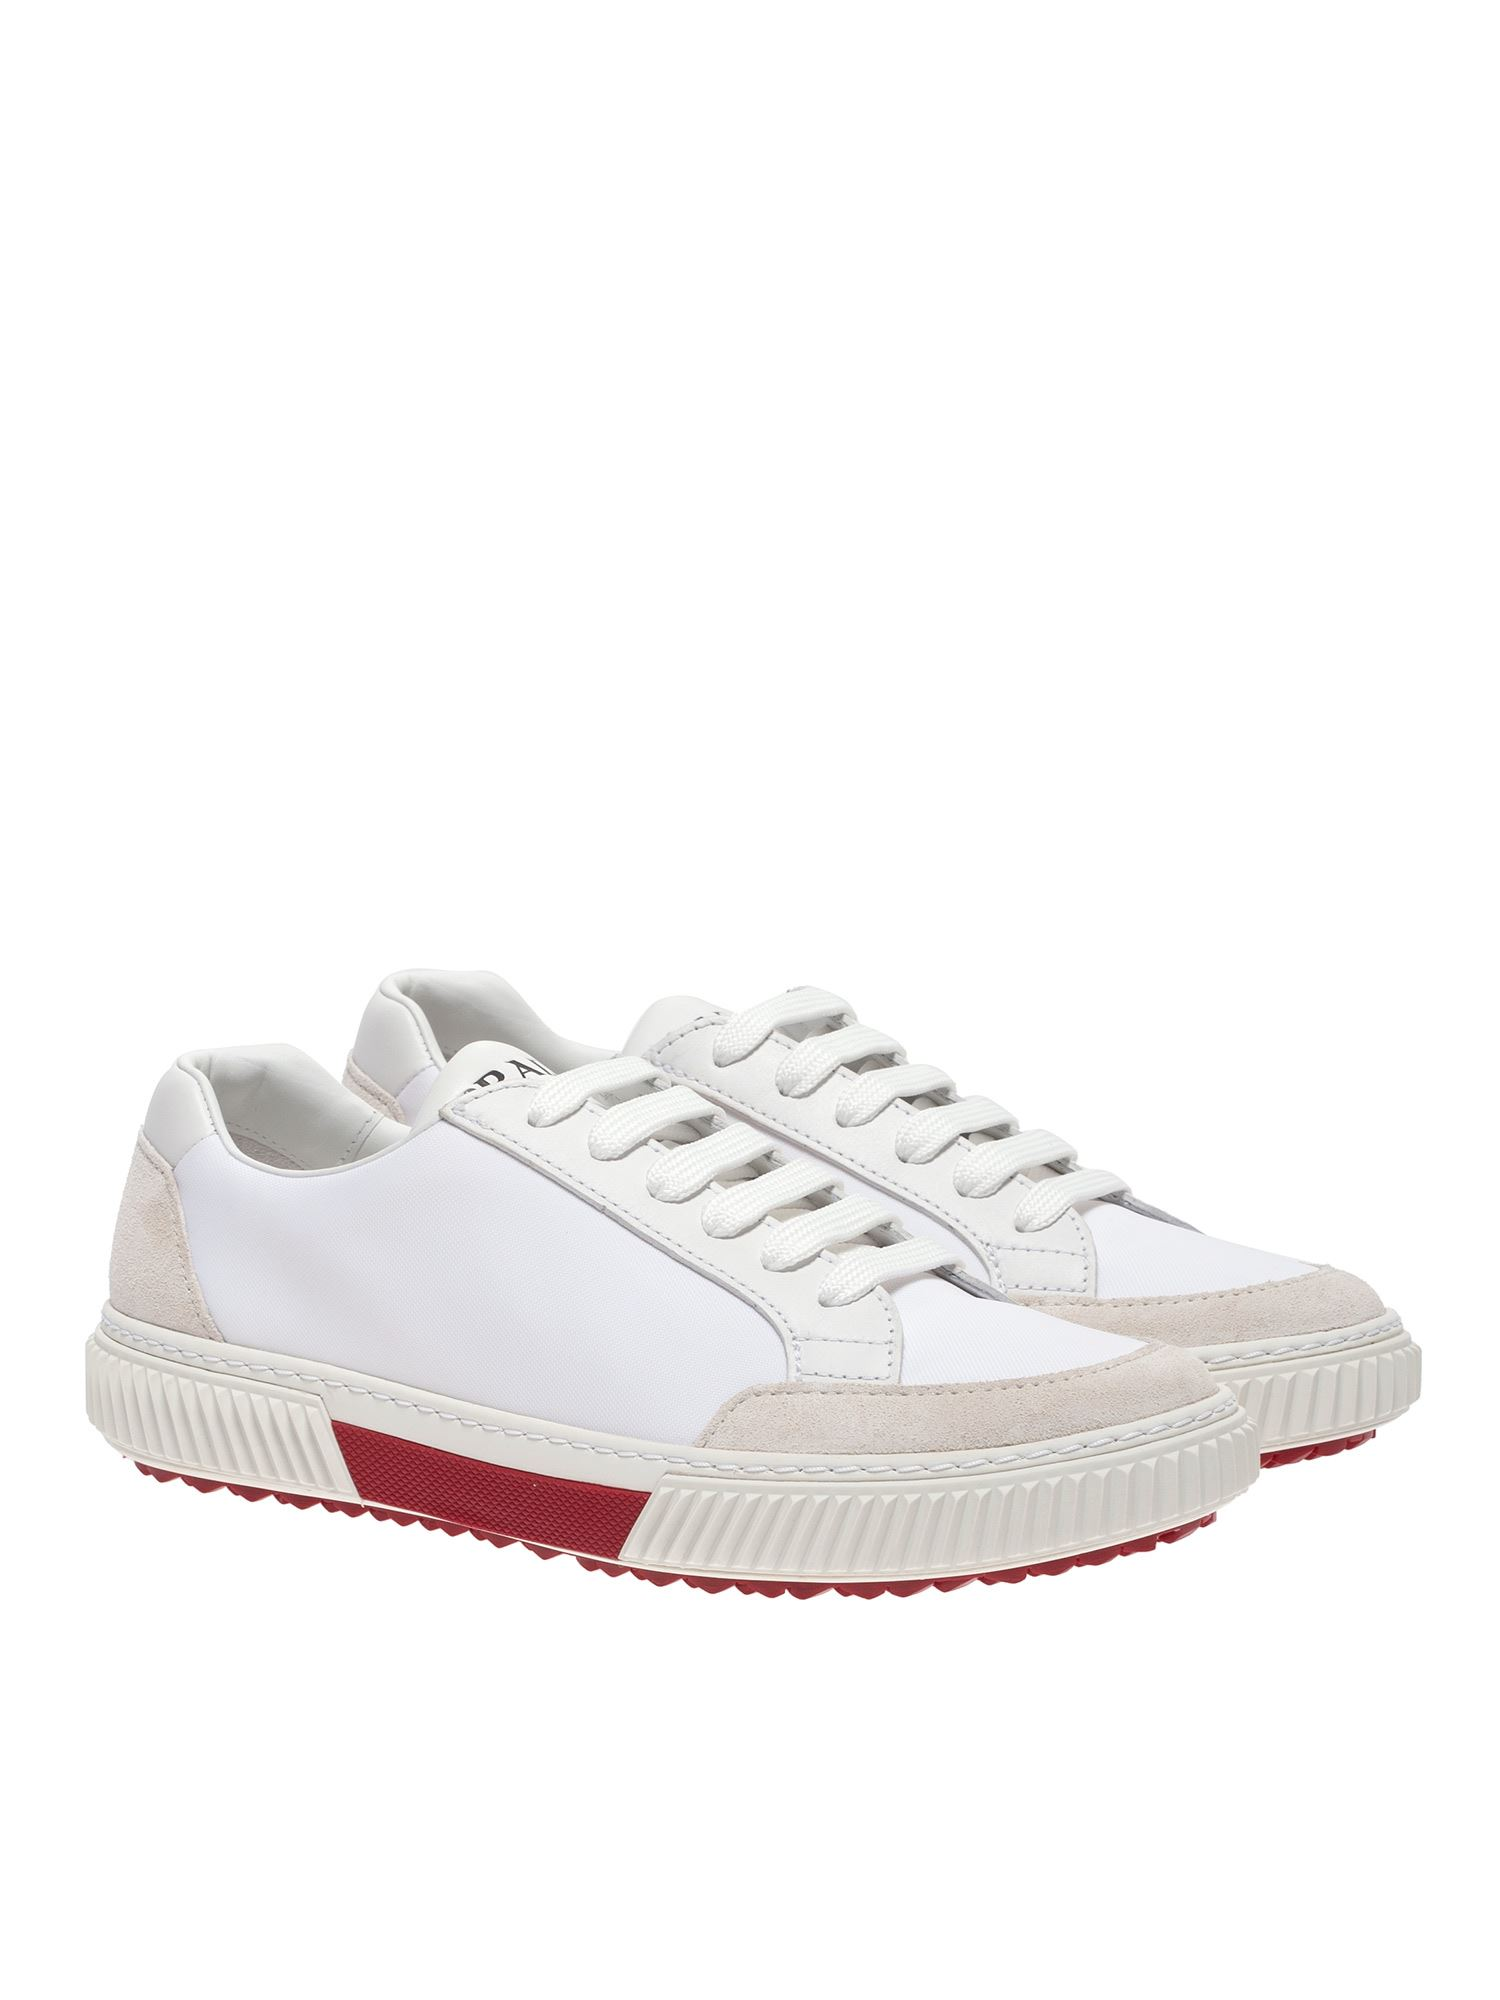 Prada Stratus Leather And Suede Sneakers In White